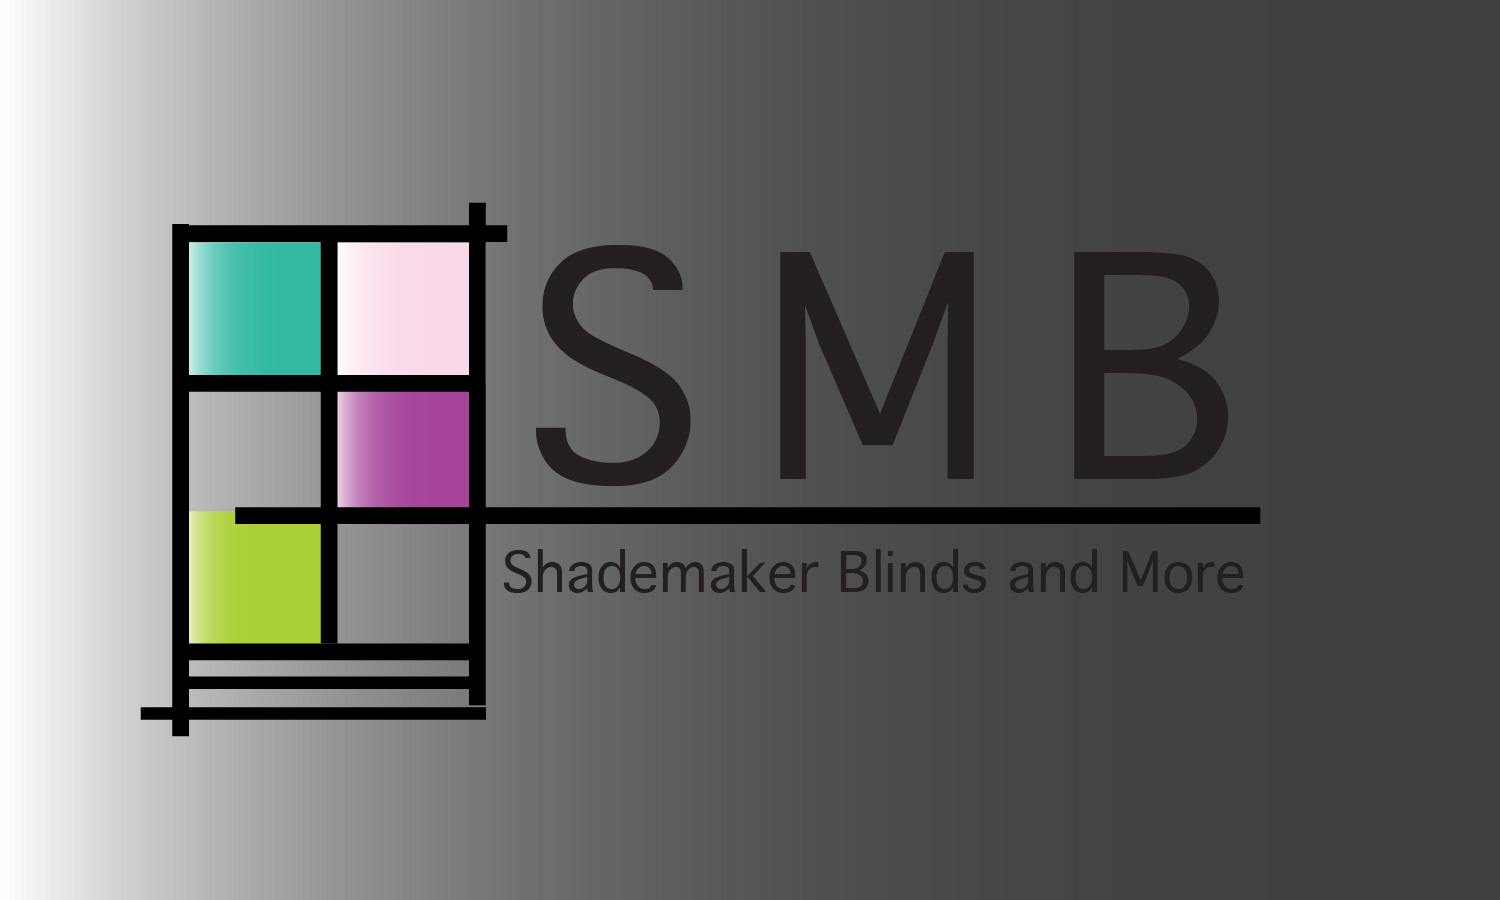 blinds and more shade blinds elegant playful business logo design for shademaker blinds and more in canada 7215336